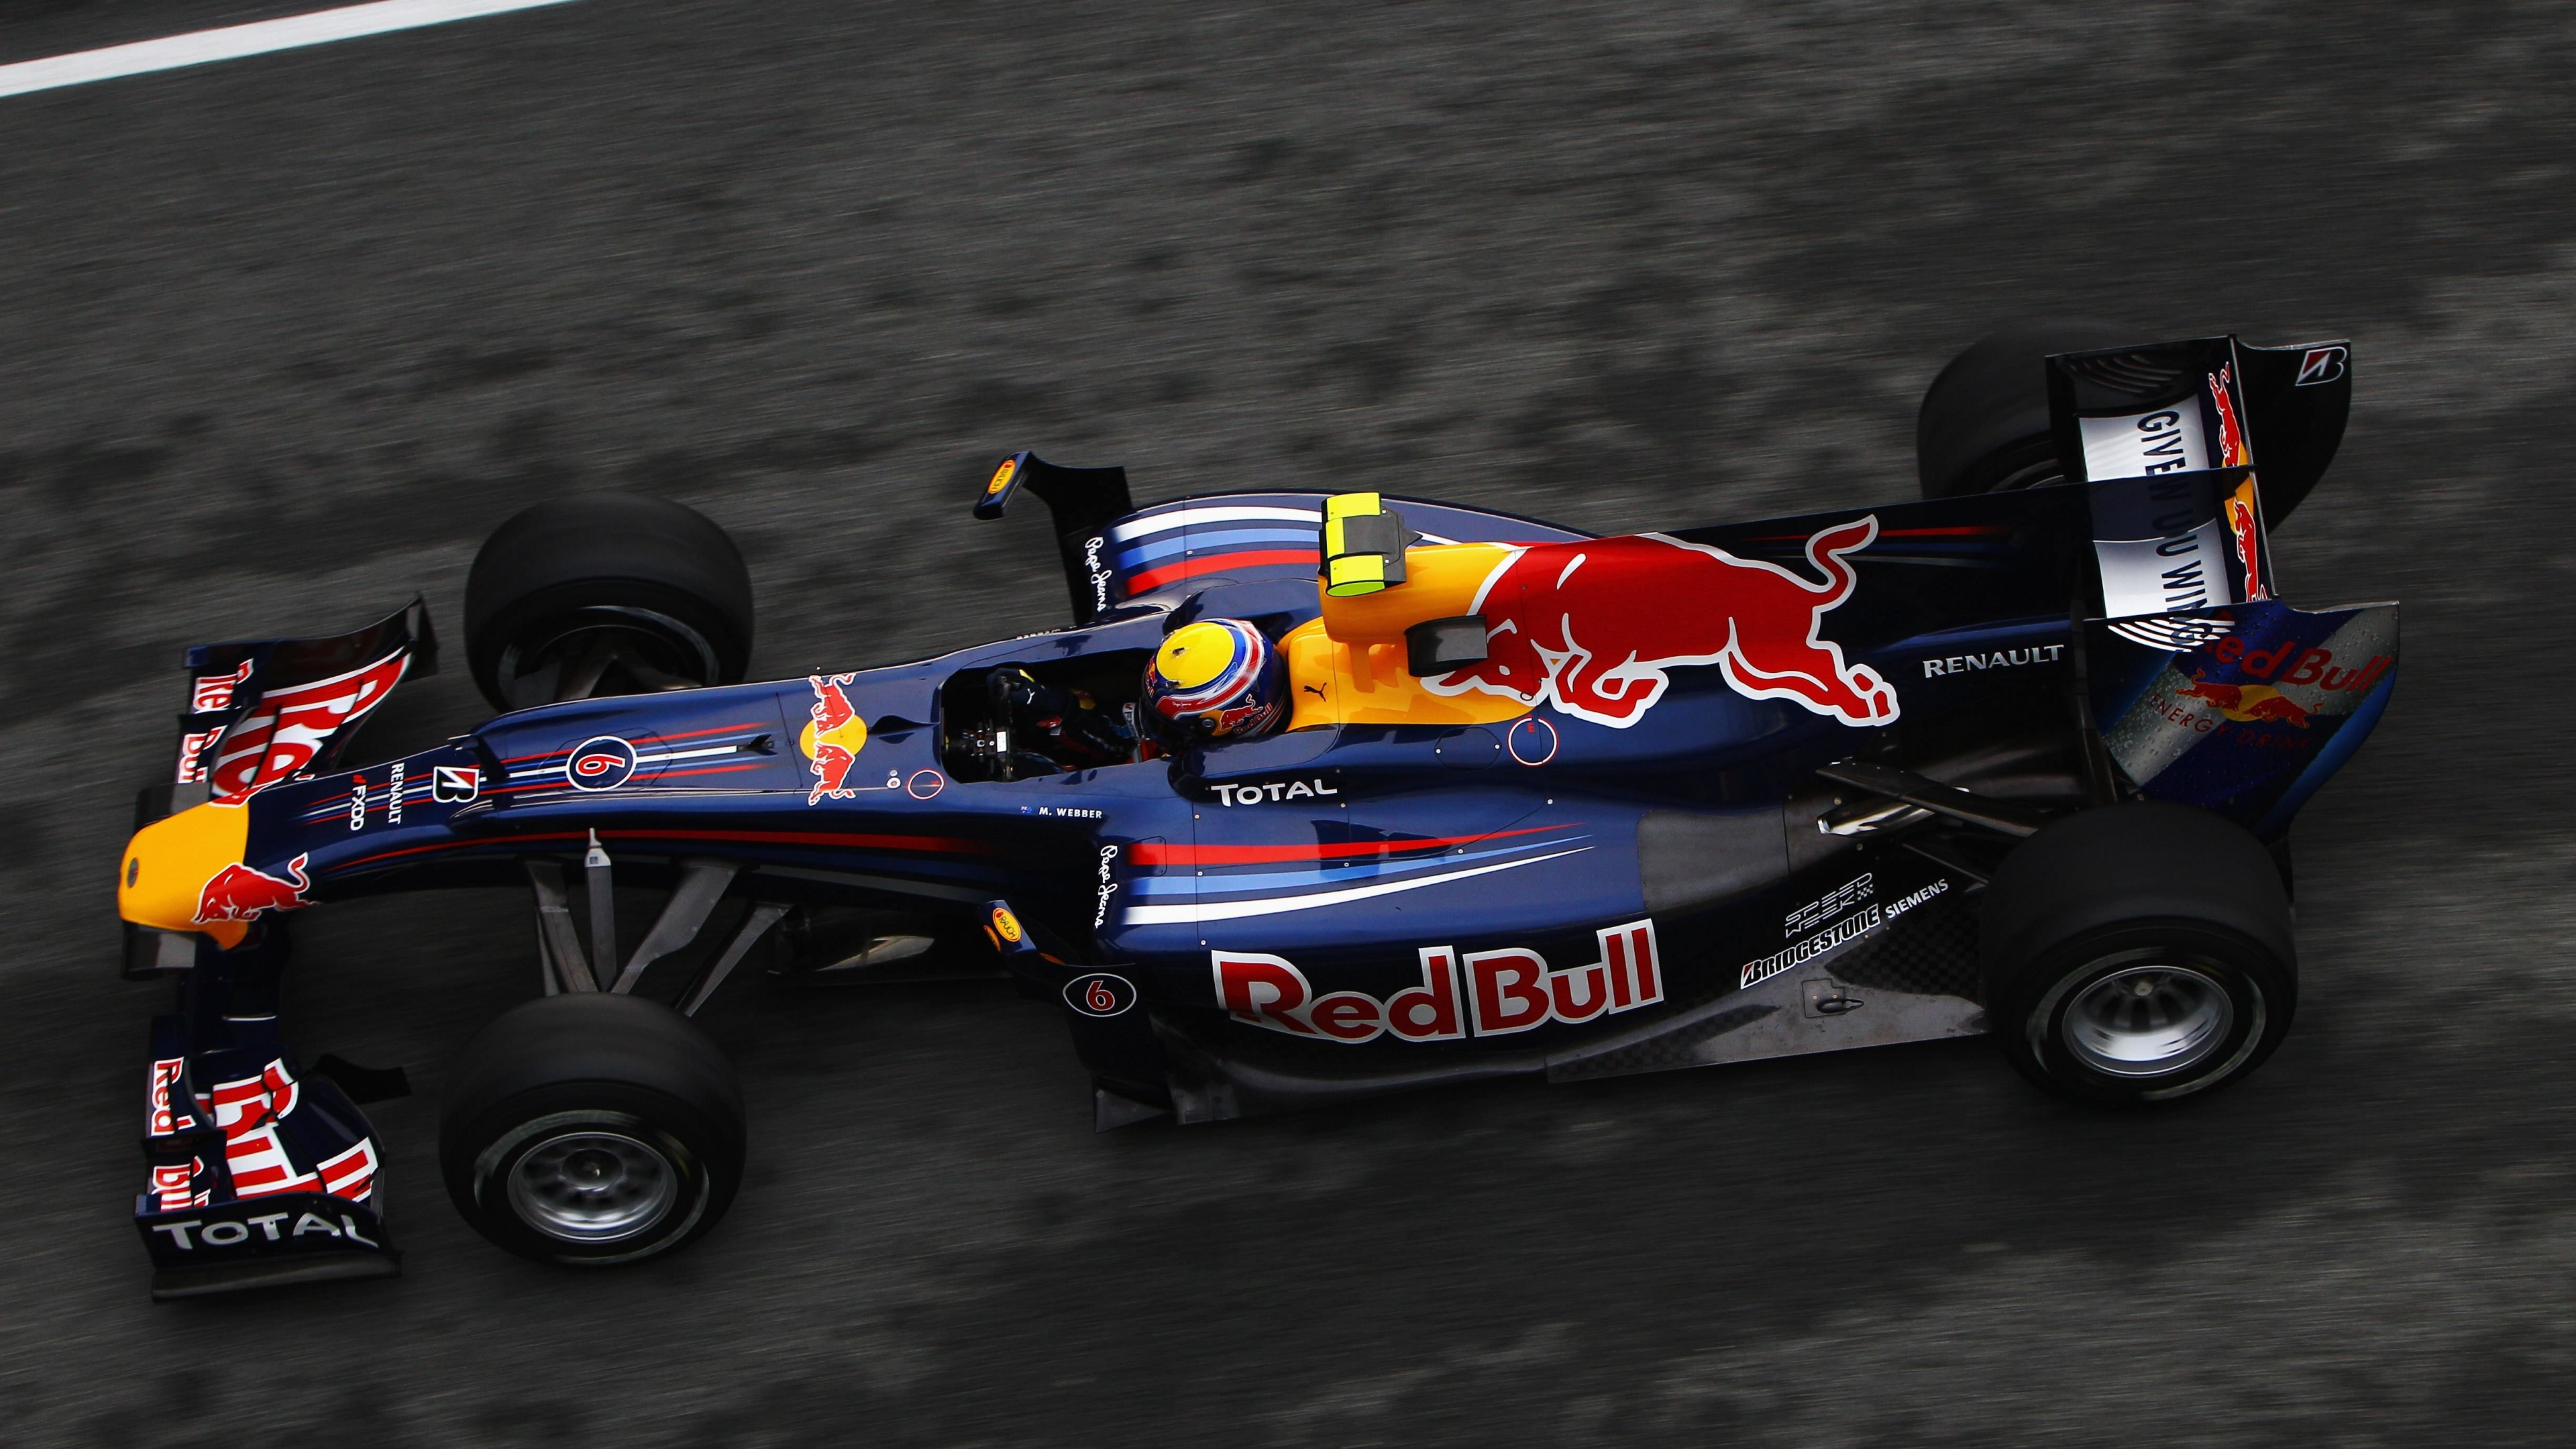 Download F1 Red Bull Team HD Wallpaper For 4K 3840 X 2160